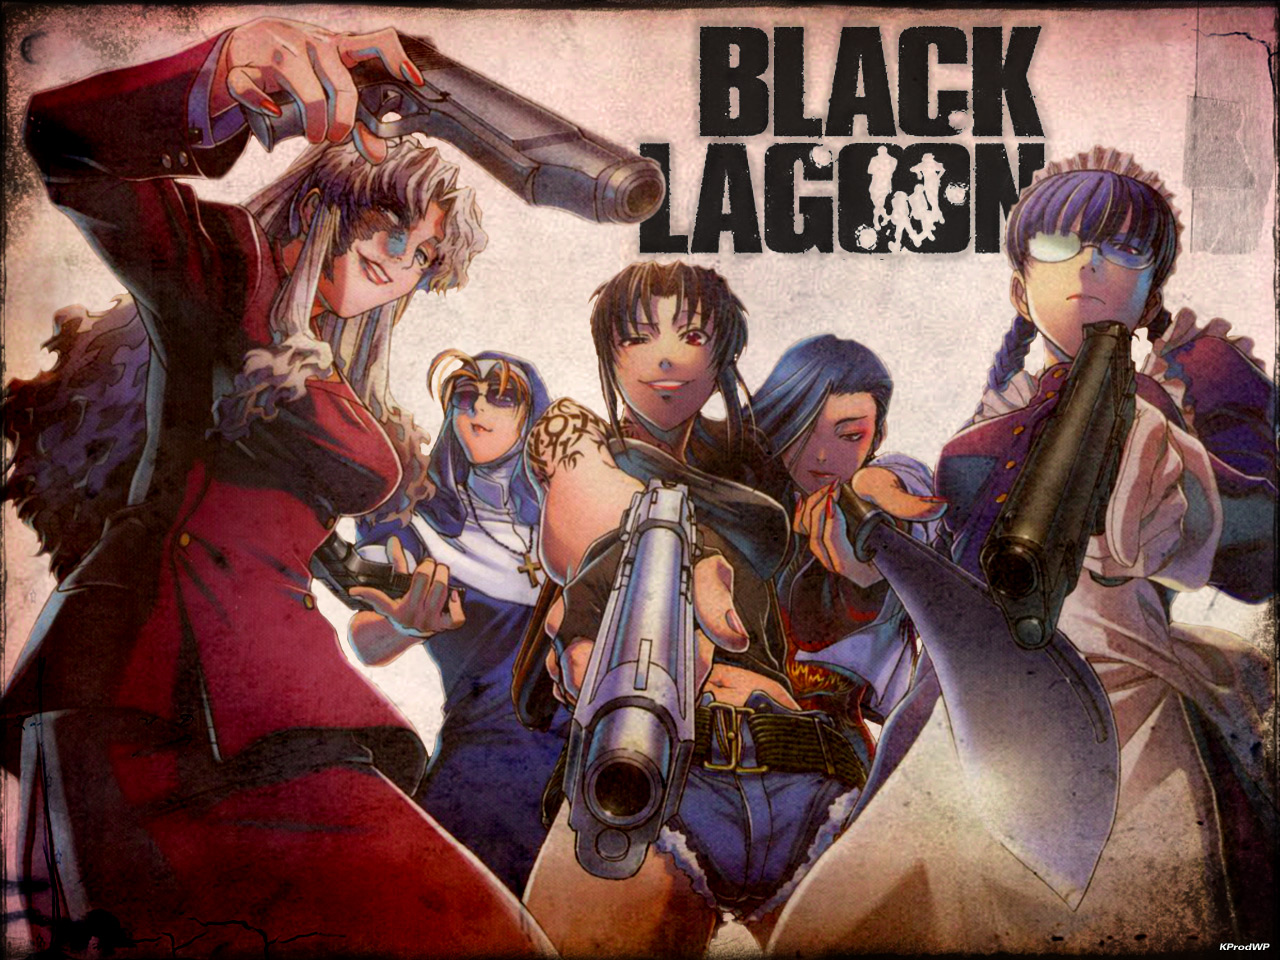 Read And Download Manga For Free: Black Lagoon Wallpapers